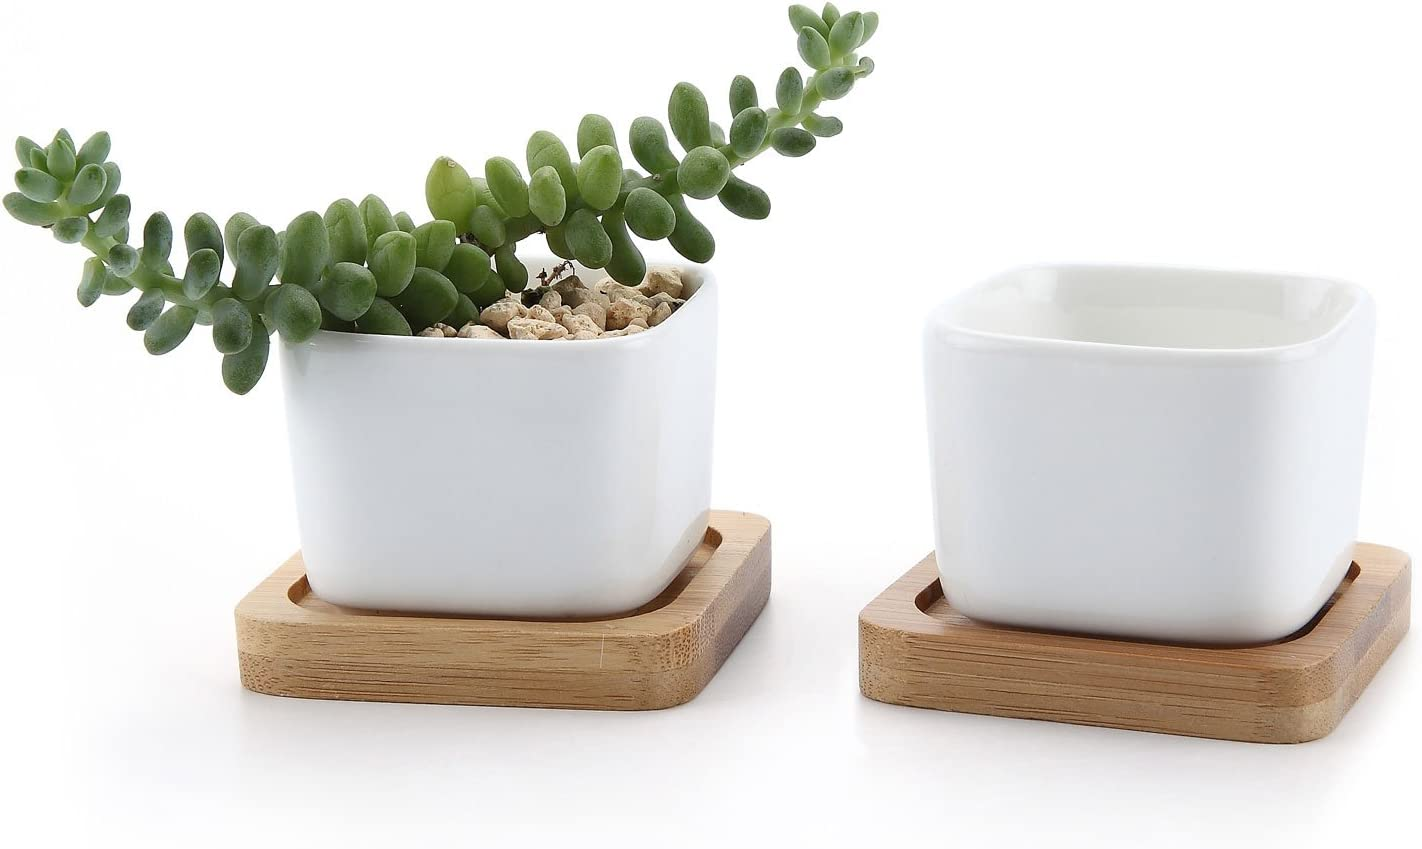 Amazon Com T4u 2 Inch Small White Succulent Planter Pots With Bamboo Tray Square Set Of 2 Ceramic Succulent Air Plant Flower Pots Cactus Faux Plants Containers White Modern Decor For Home And